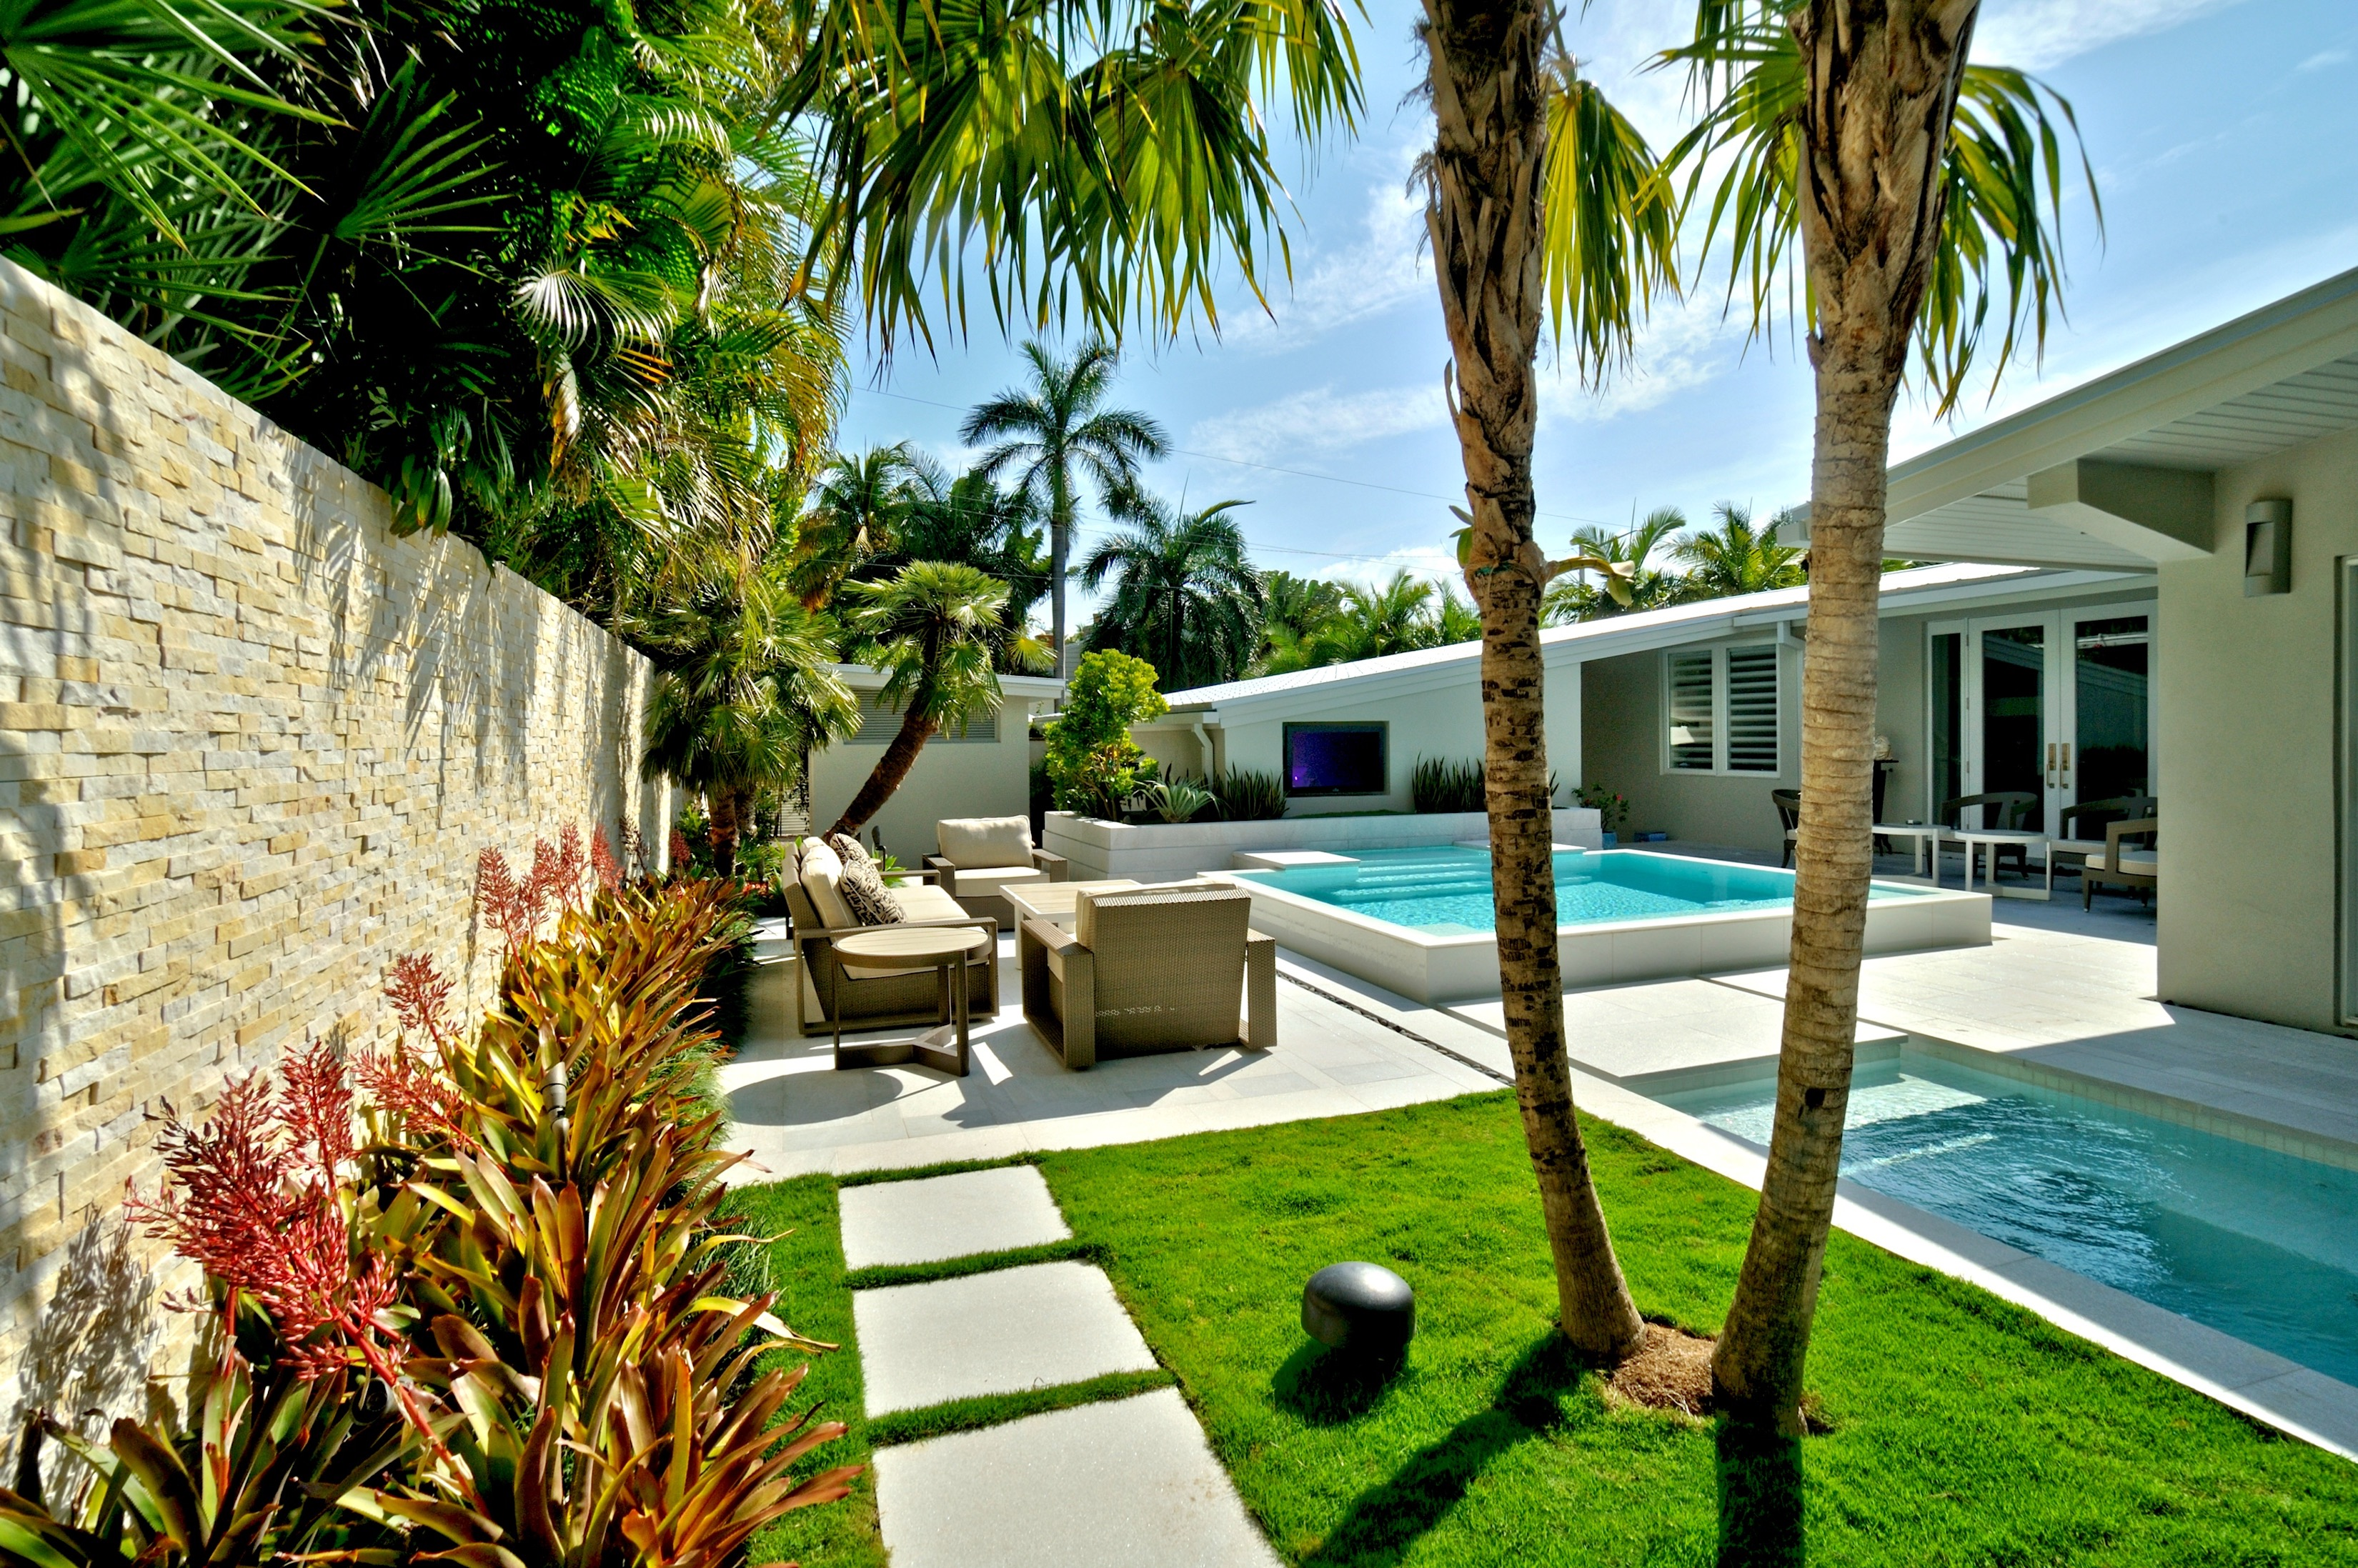 Contemporary Tropical Backyard Pool Area With Palms (Image 5 of 30)